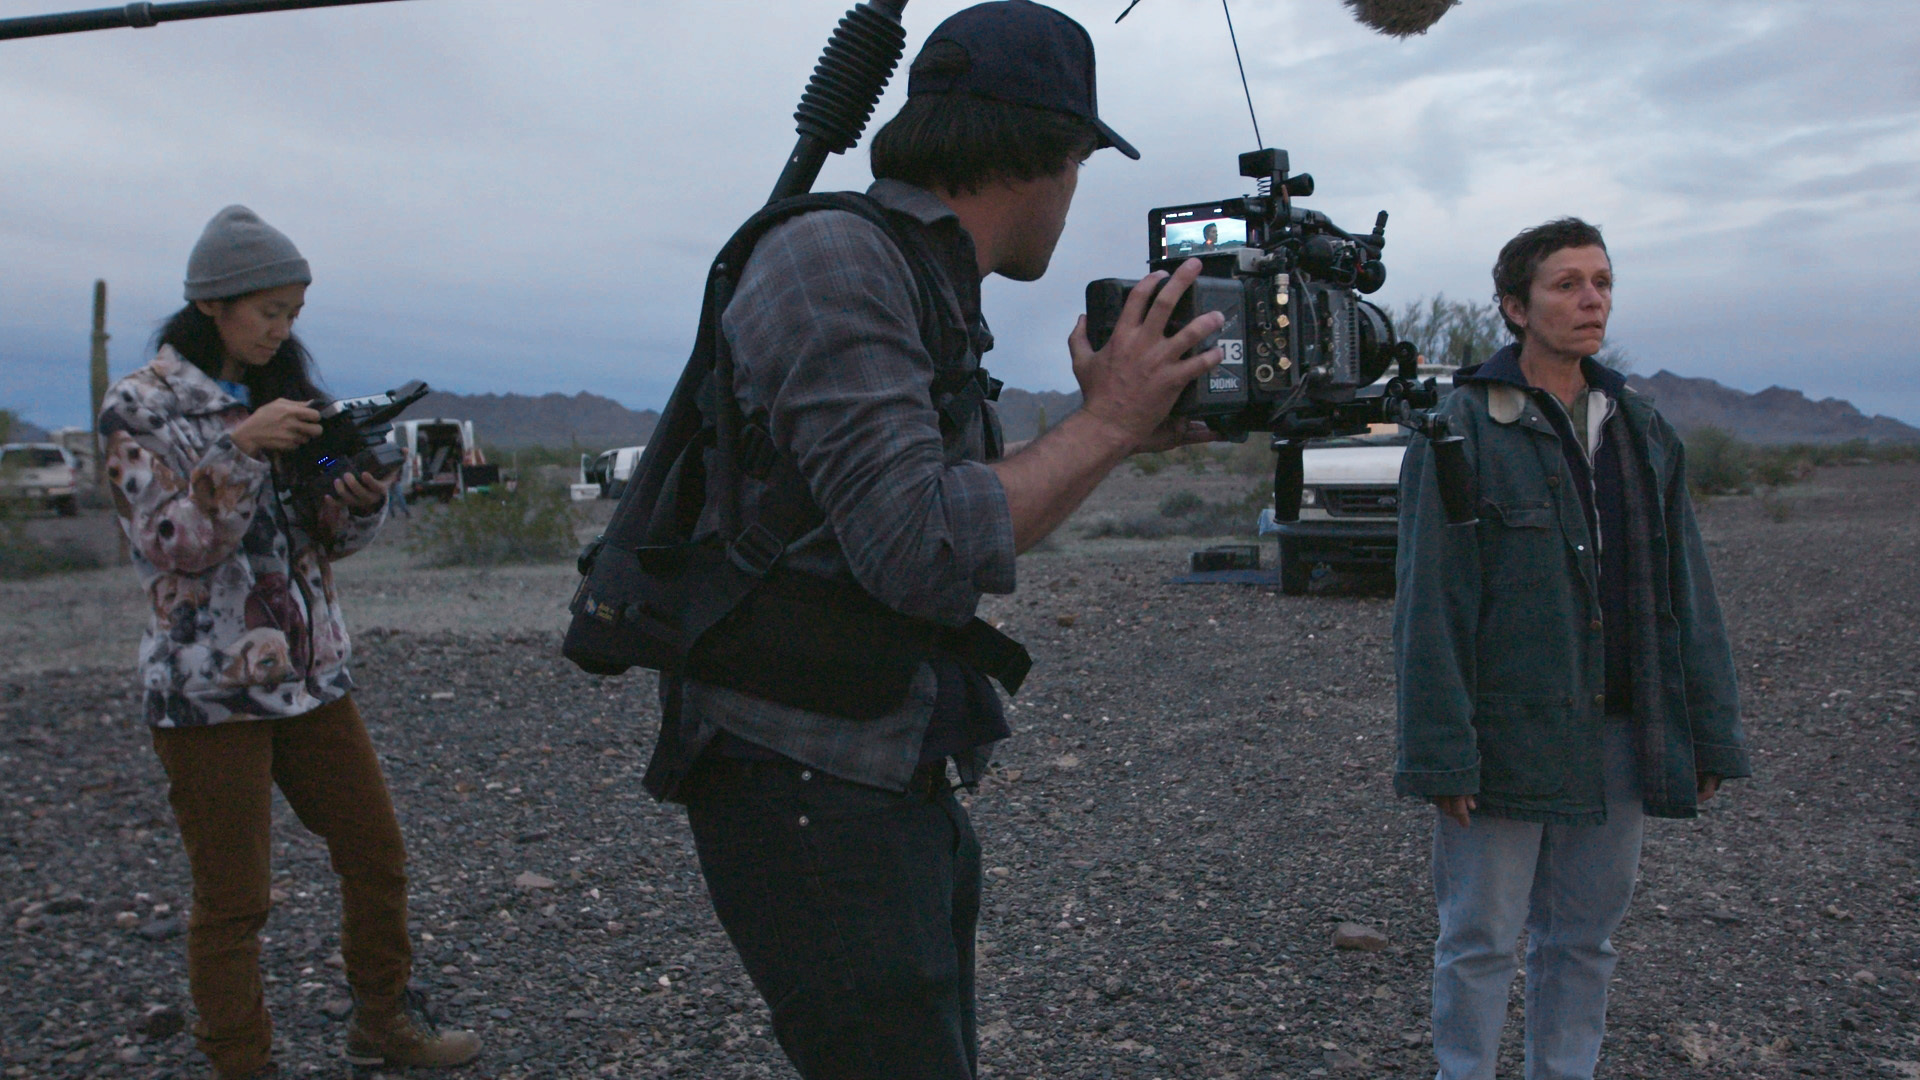 "This image released by Searchlight Pictures shows writer-director Chloé Zhao, from left, director of photography Joshua James Richards and actress Frances McDormand on the set of ""Nomadland."" Zhao has made cinema of rugged authenticity, relying frequently on non-professional actors and moments of serendipity while filming. She is nominated for a Golden Globe for best director. (Searchlight Pictures via AP)"